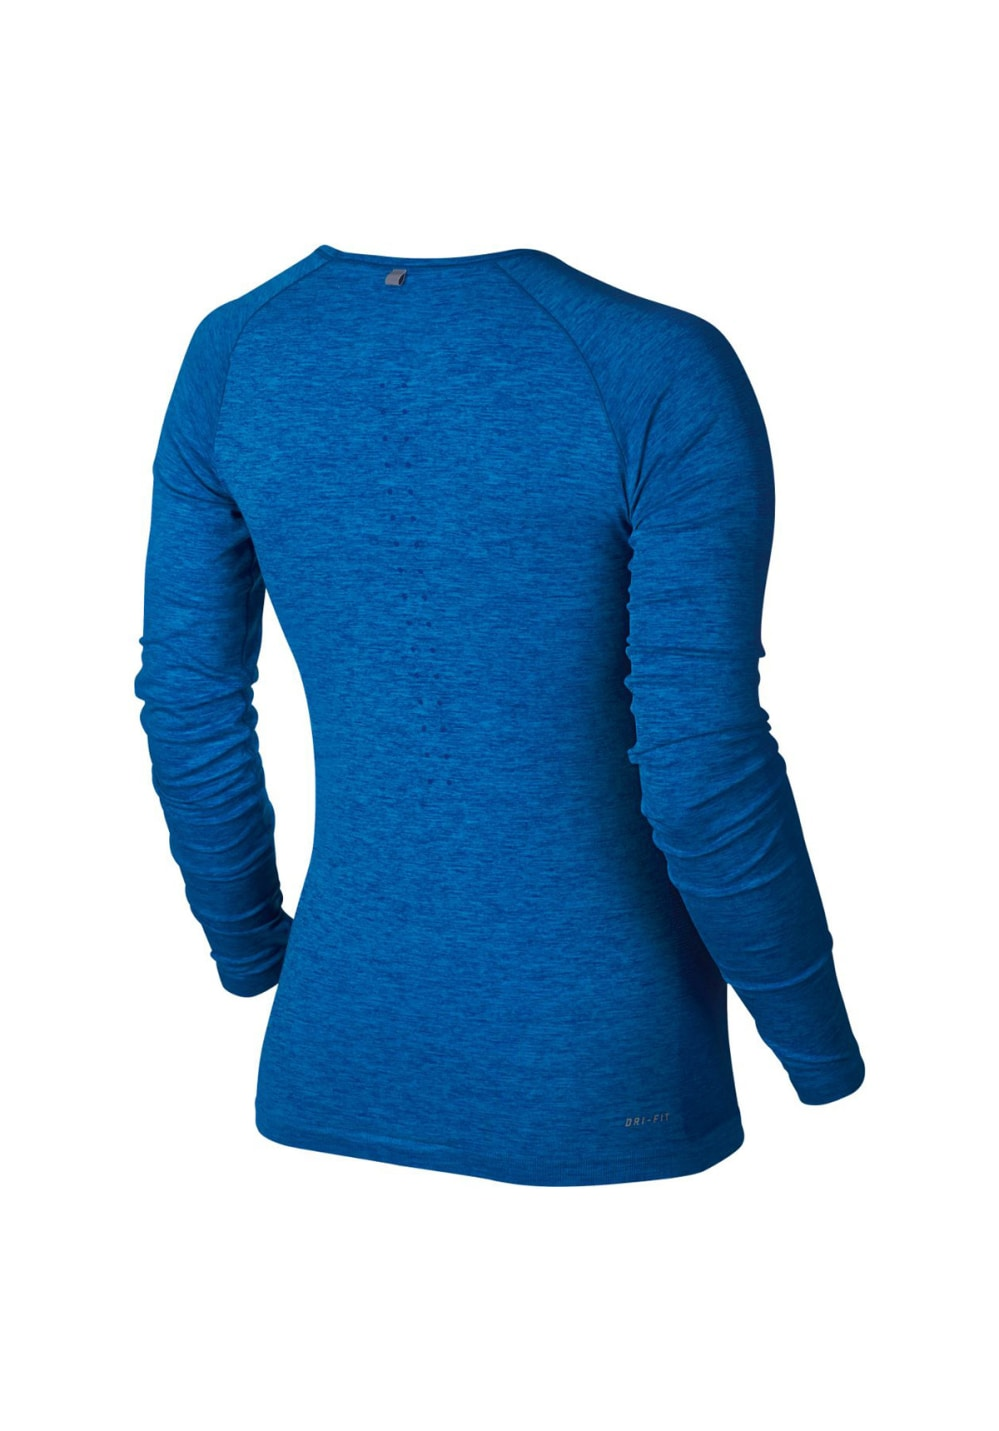 f567baa826a797 Next. Nike. Dri-Fit Knit Long Sleeve - Running tops for Women. €74.95. incl.